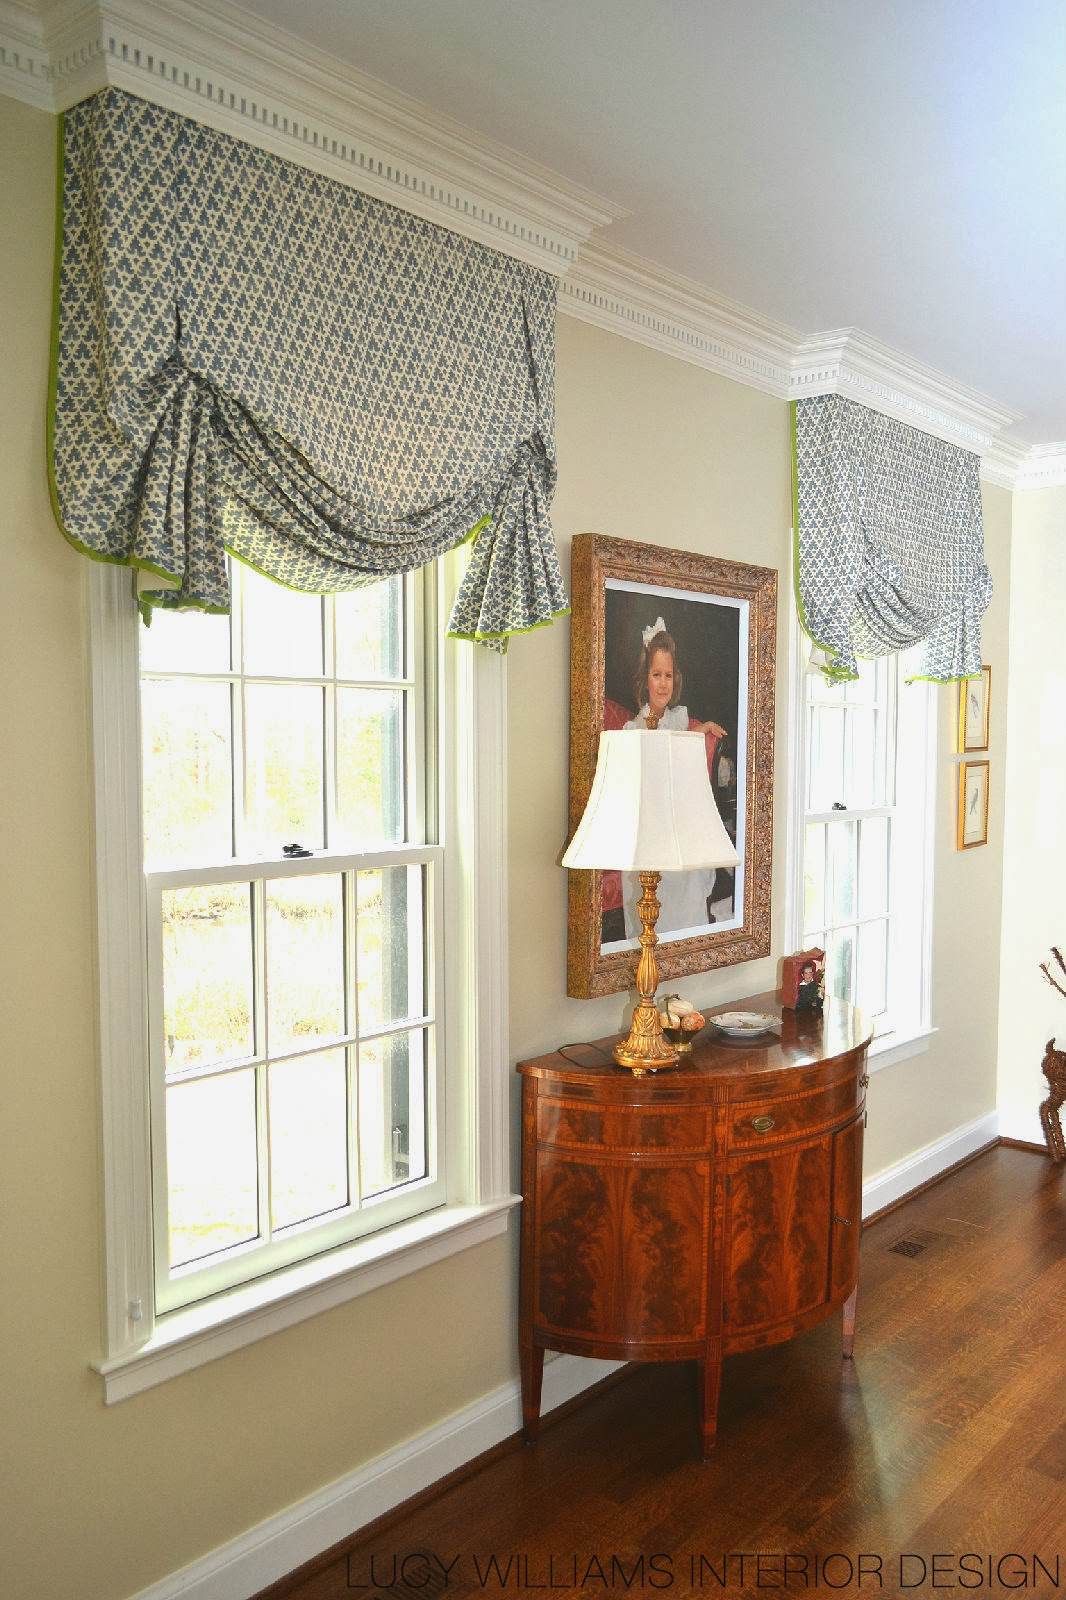 Lucy williams interior design blog before and after - Living room picture window treatments ...